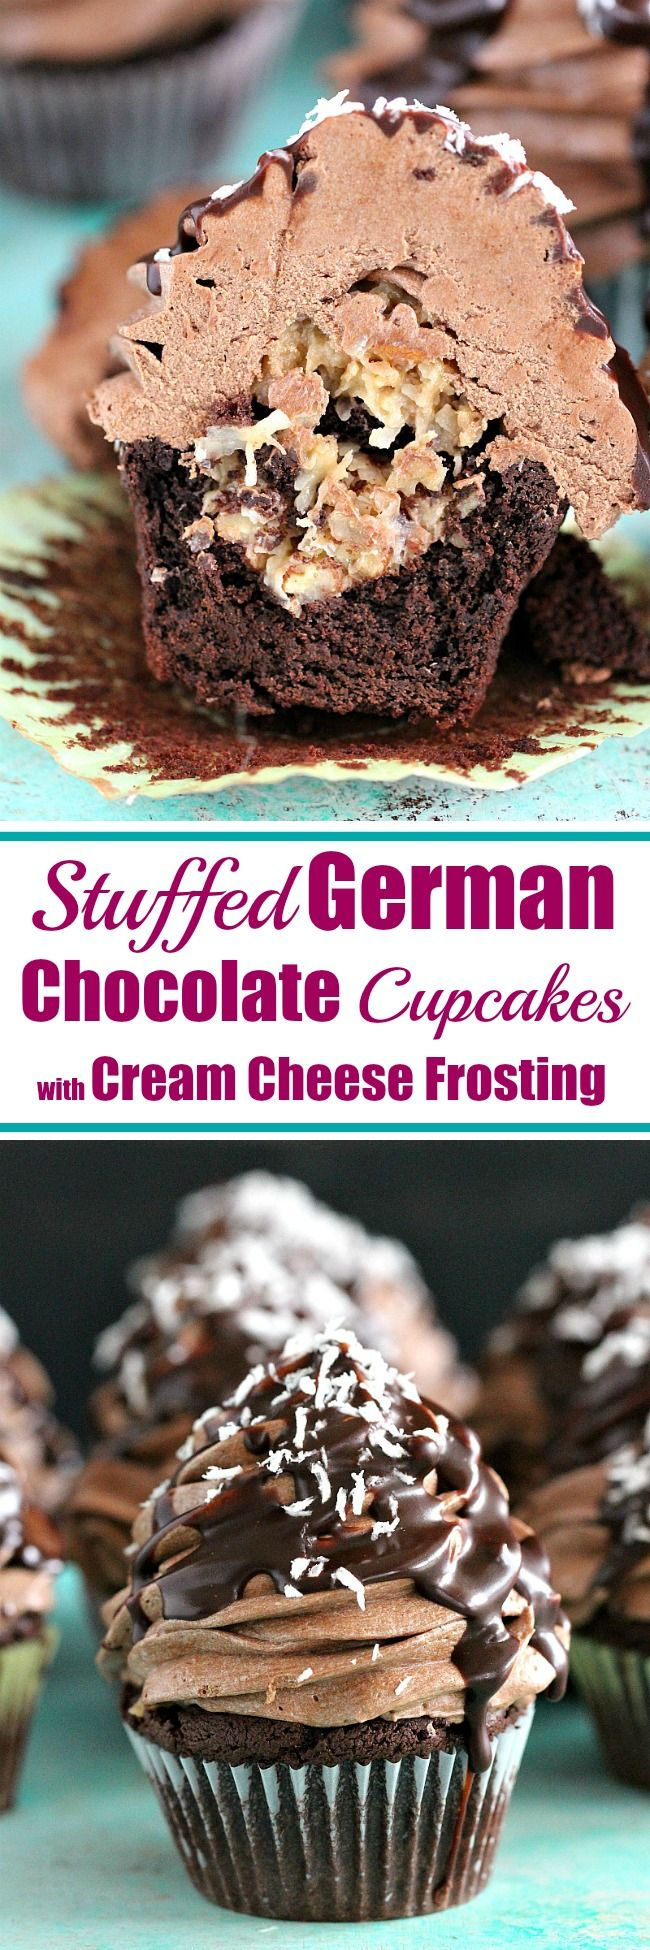 Best German Chocolate Cupcakes recipe,soft and chocolaty cupcakes are stuffed with a coconut-pecan filling and topped with chocolate cream cheese frosting.